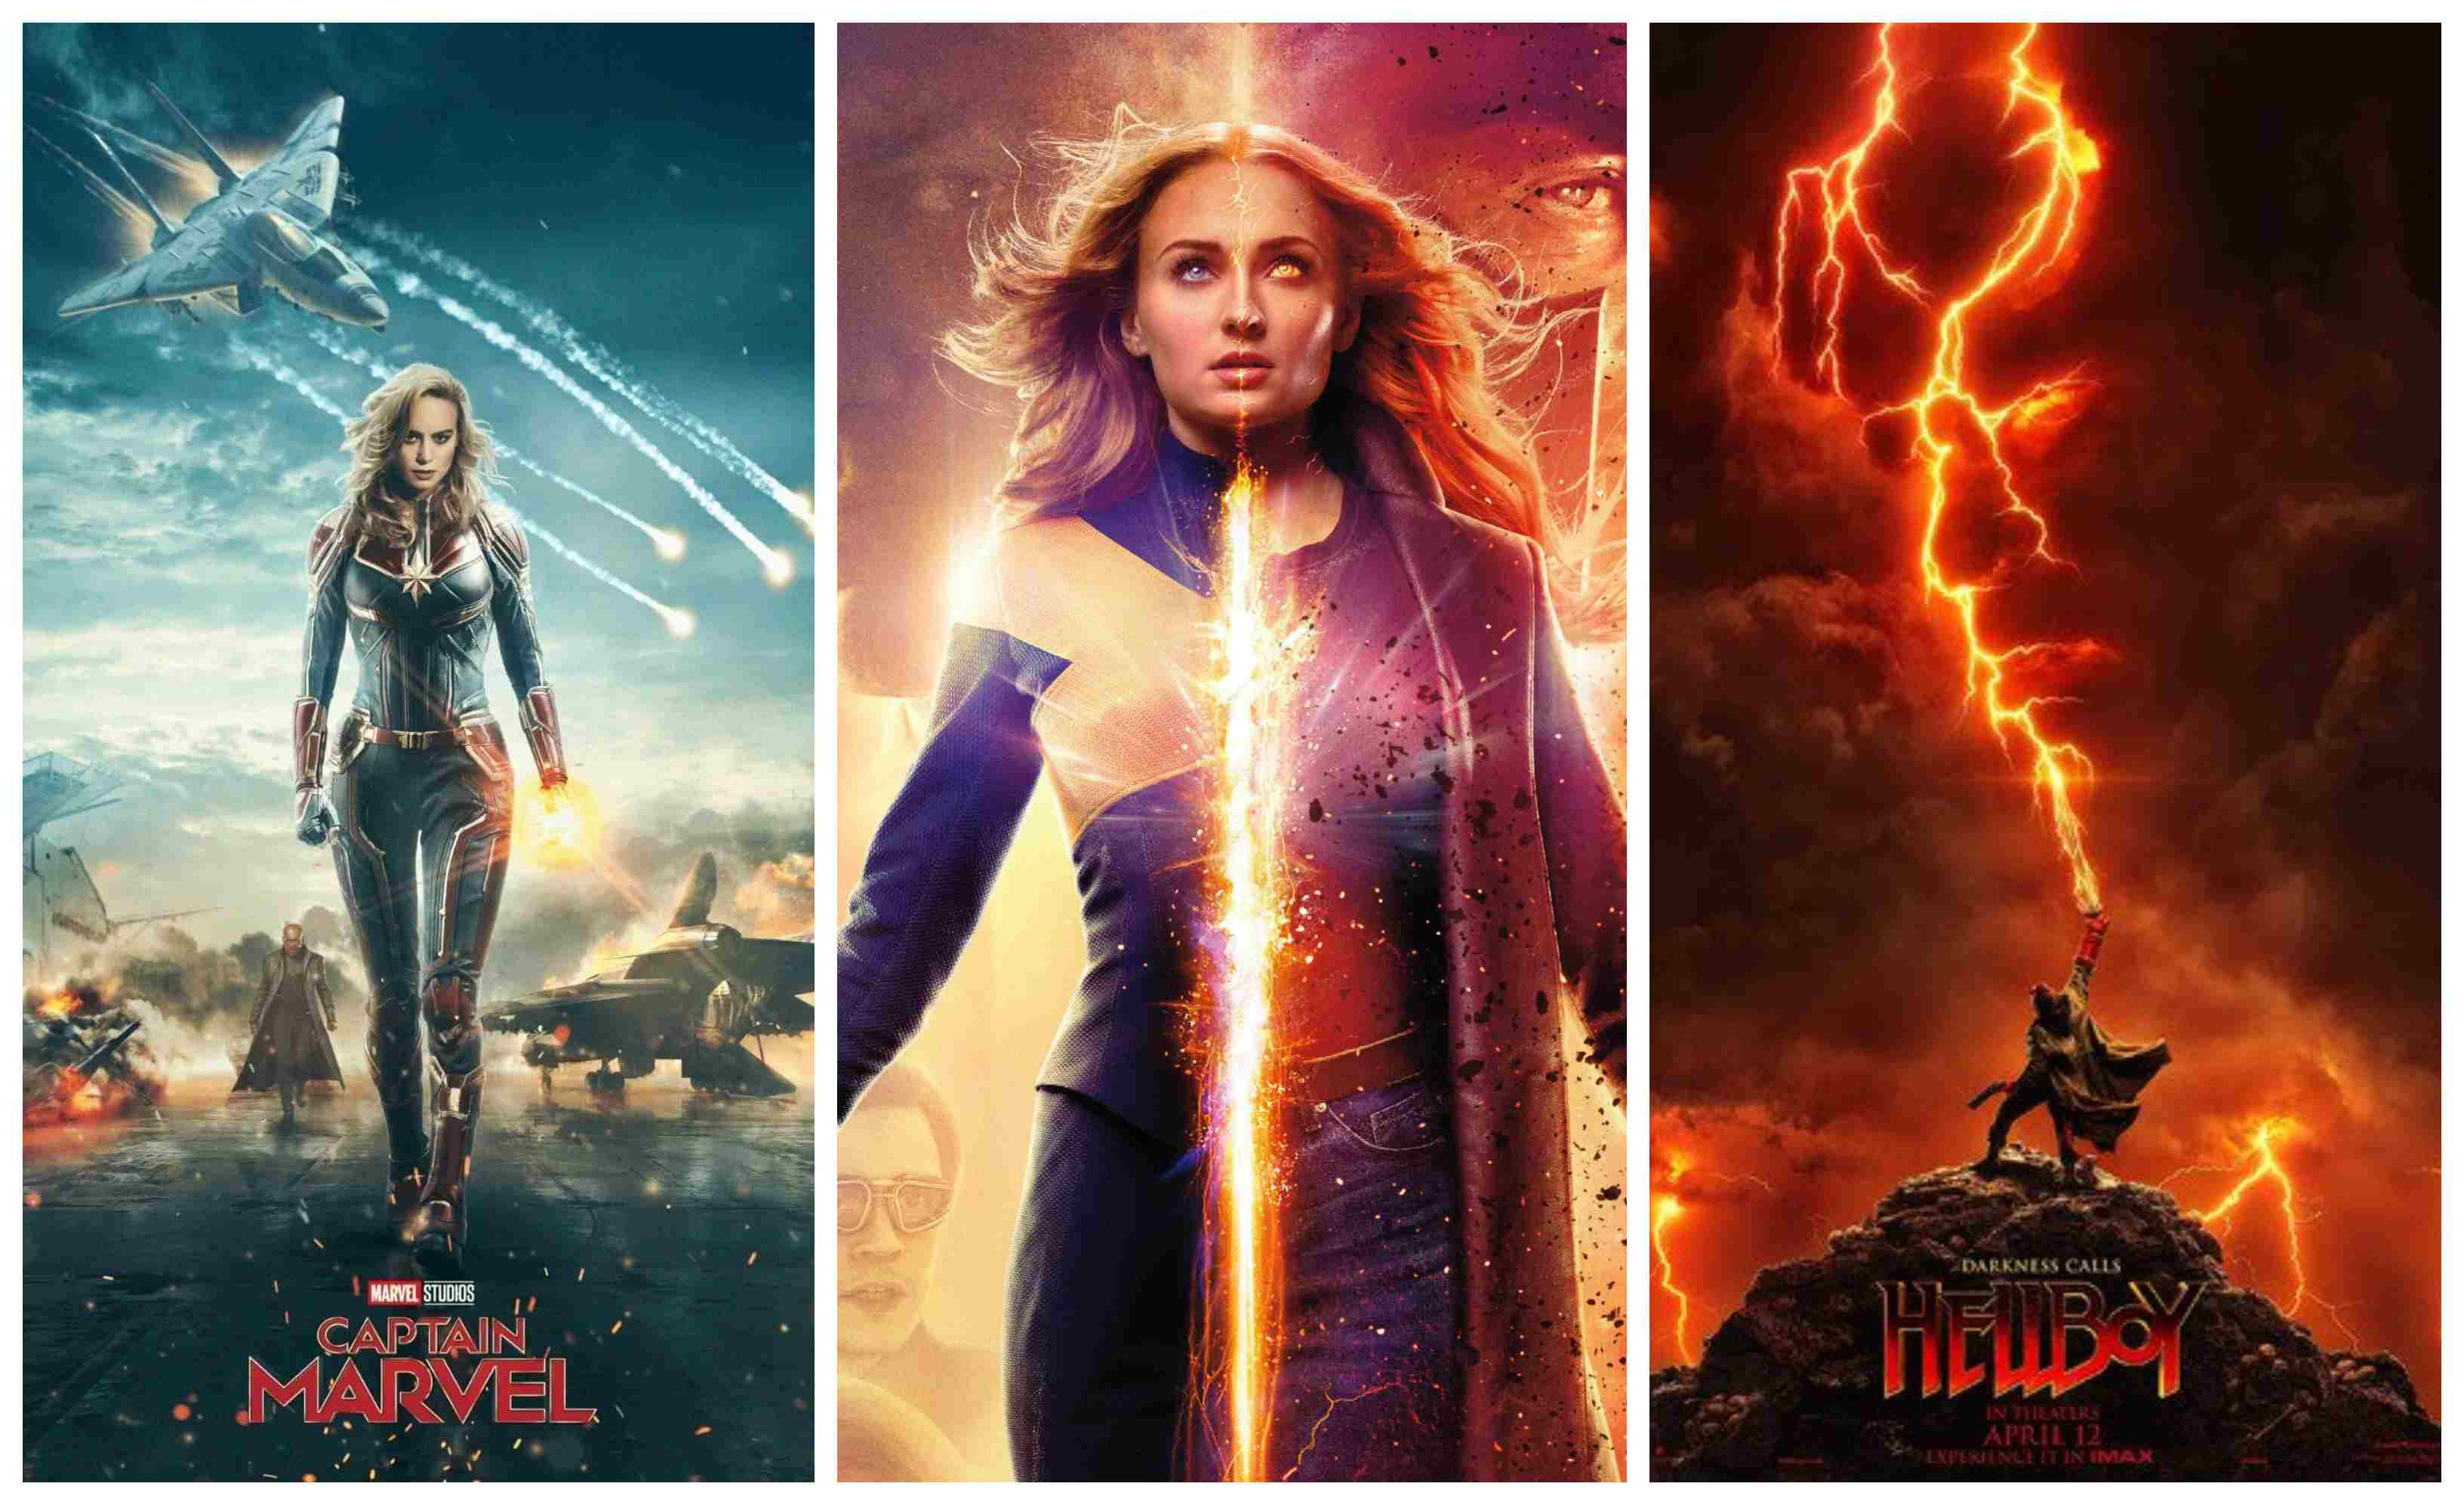 Some Awesome Movies Coming To Theaters in 2019